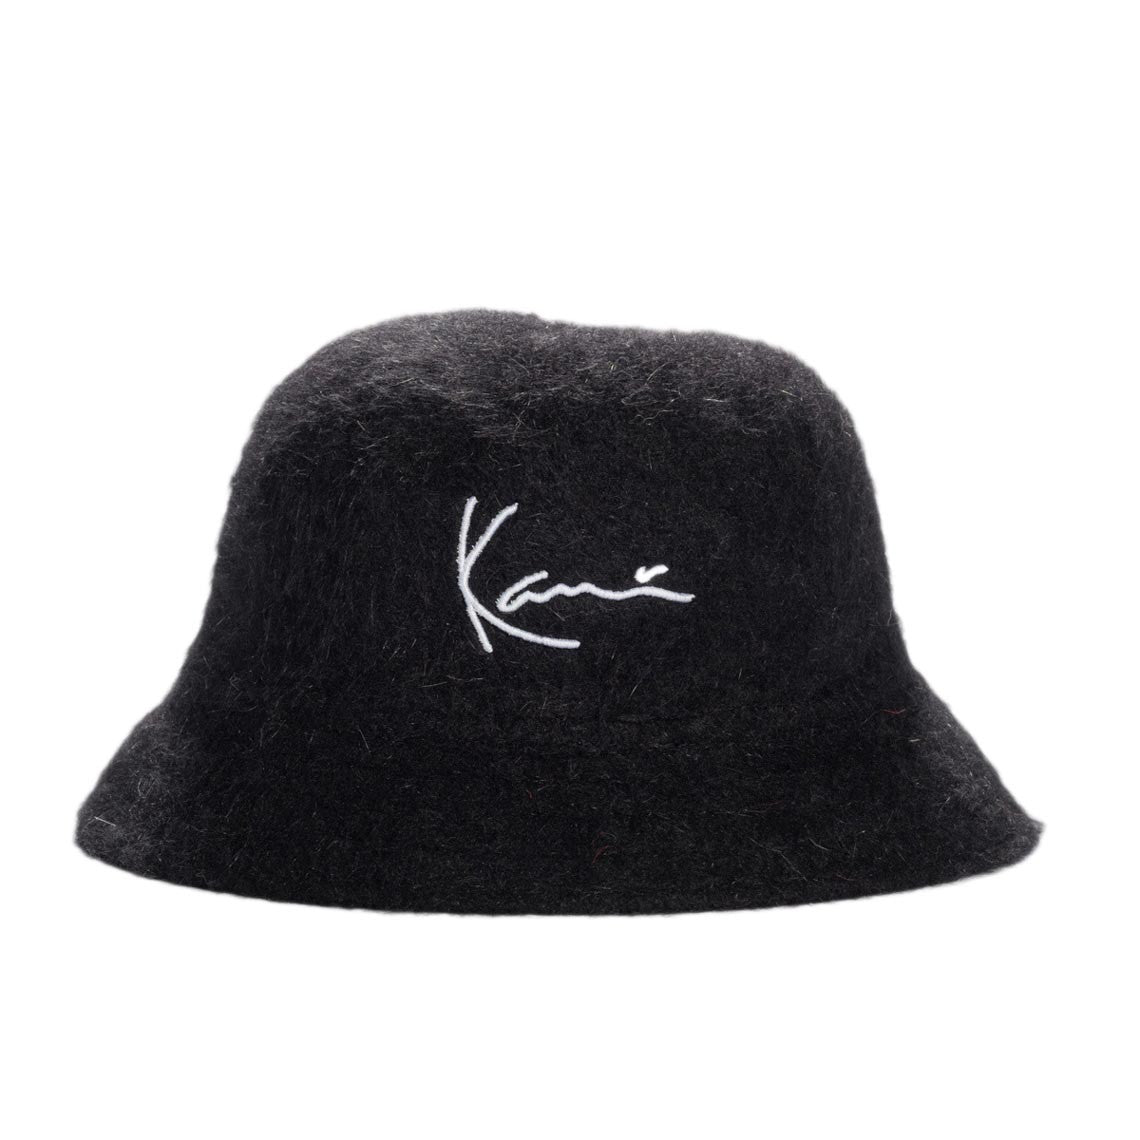 OG Bucket Hat (Black)